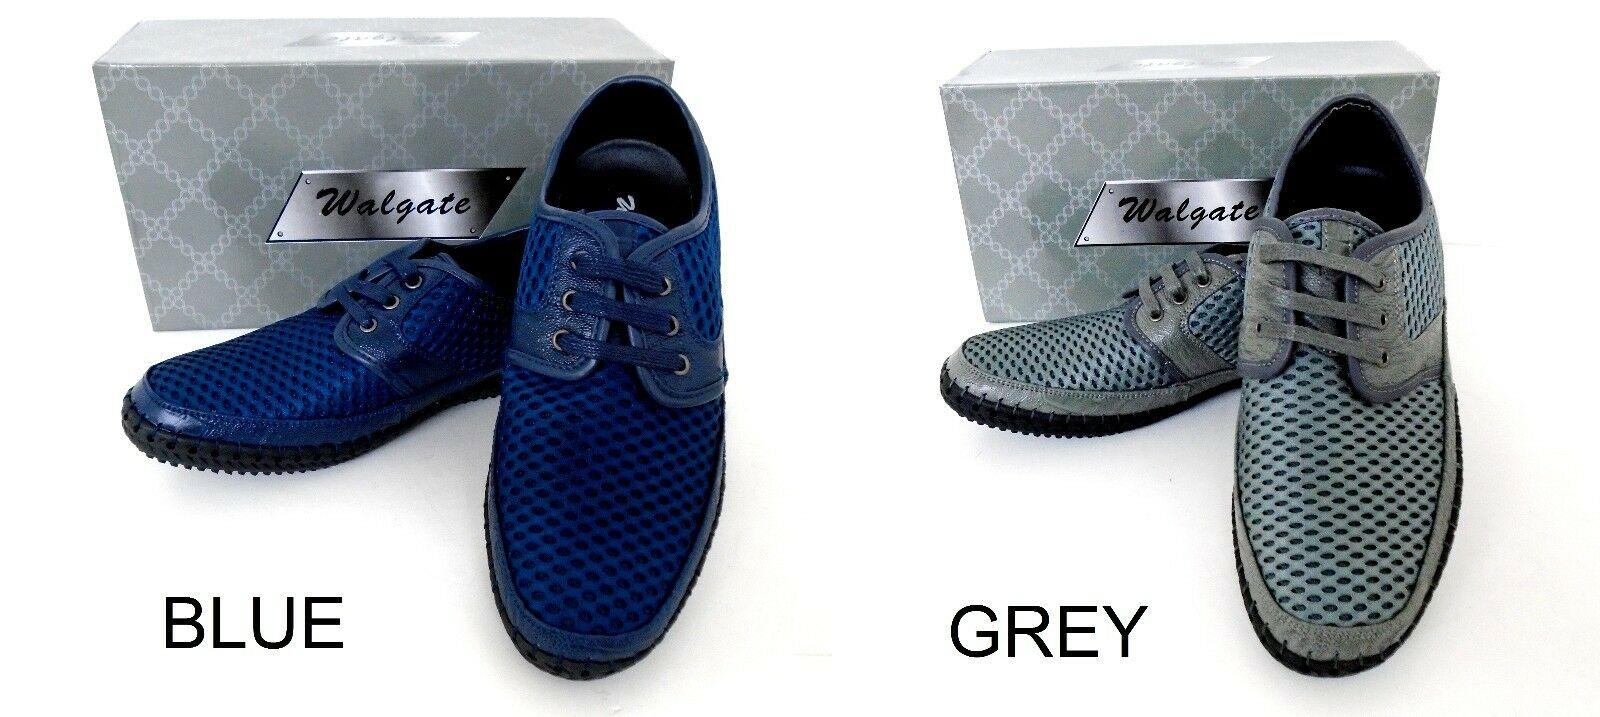 Men's WALGATE Blue sports Grey leather lining sneakers sports Blue mesh casual shoes 8306 06e6bc